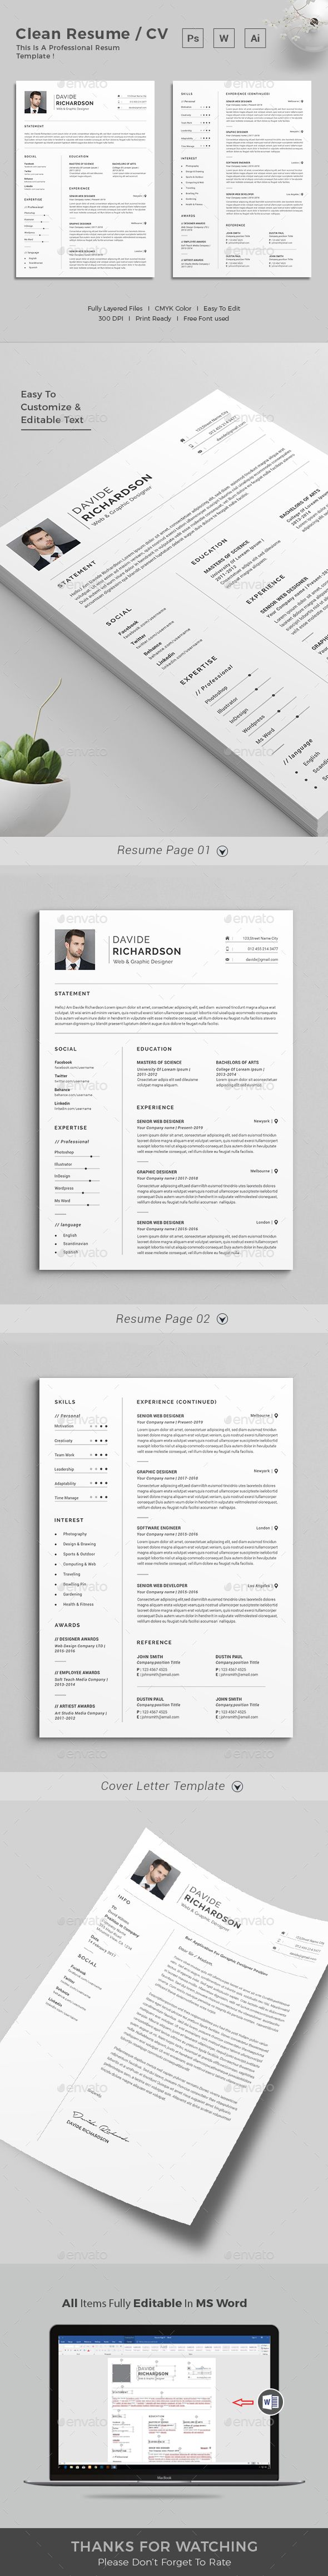 How To Make A Resume With Word Captivating Resume  Resume Words Creative Resume Templates And Template